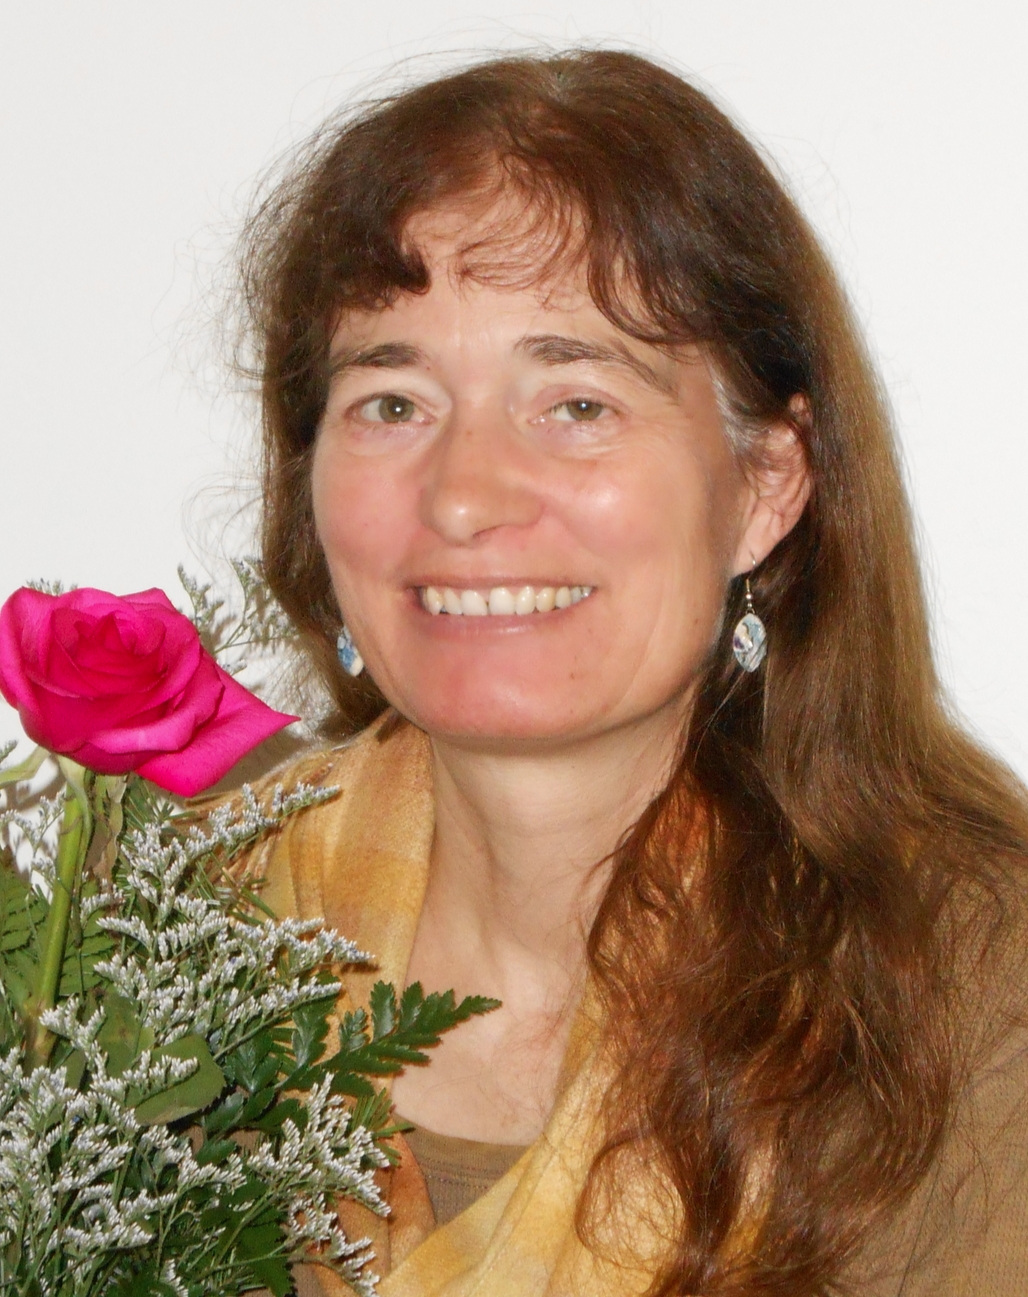 Manuela Maeder,   Massage Therapist #086   Manuela gradated from the New Mexico School of Natural Therapeutics in 1992 in Albuquerque and brings many years of experience to her massage practice. In addition to doing customized relaxation massage, she also offers Thai, Shiatsu, Oncology, and prenatal massages. Manuela's combination of nurturing deep work addresses specific areas of concern.   Special Note:   Thai massage  is done on a mat on the floor with the client fully clothed. Please wear loose, comfortable clothing. A  Shiatsu session  is done on a table also with the client wearing loose, comfortable clothing.